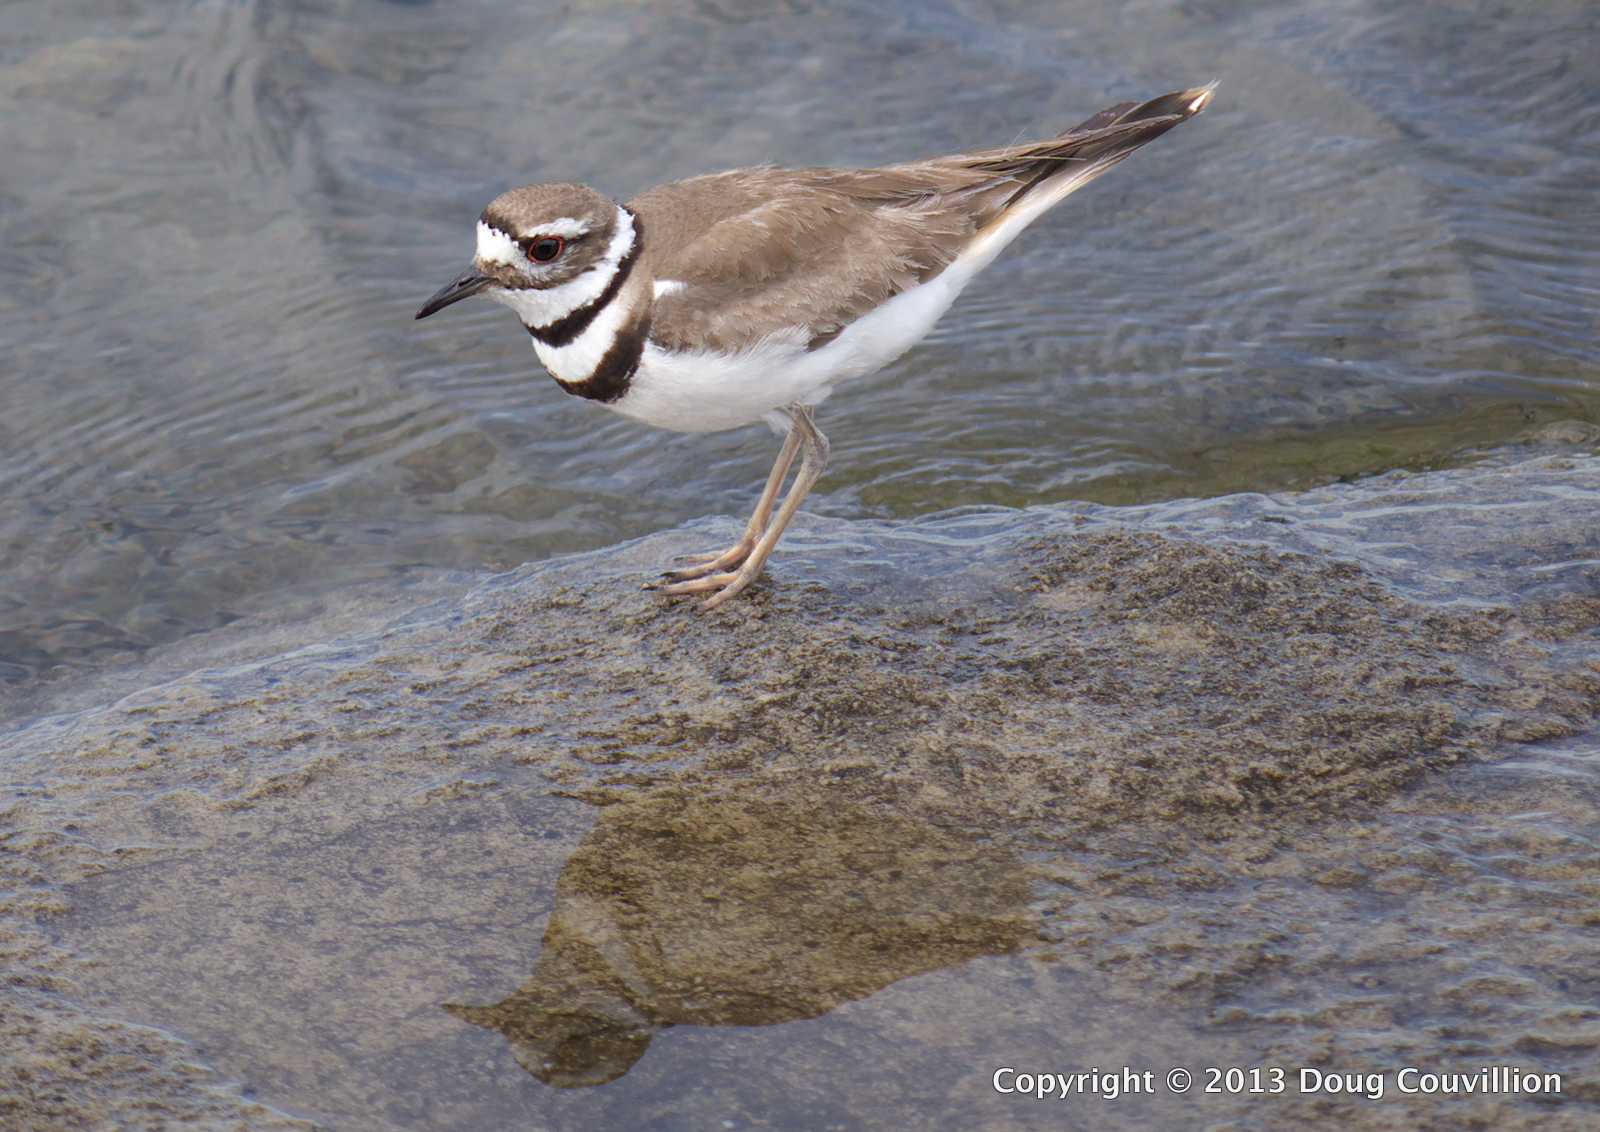 color photograph of a killdeer standing on a rock near the edge of a lake